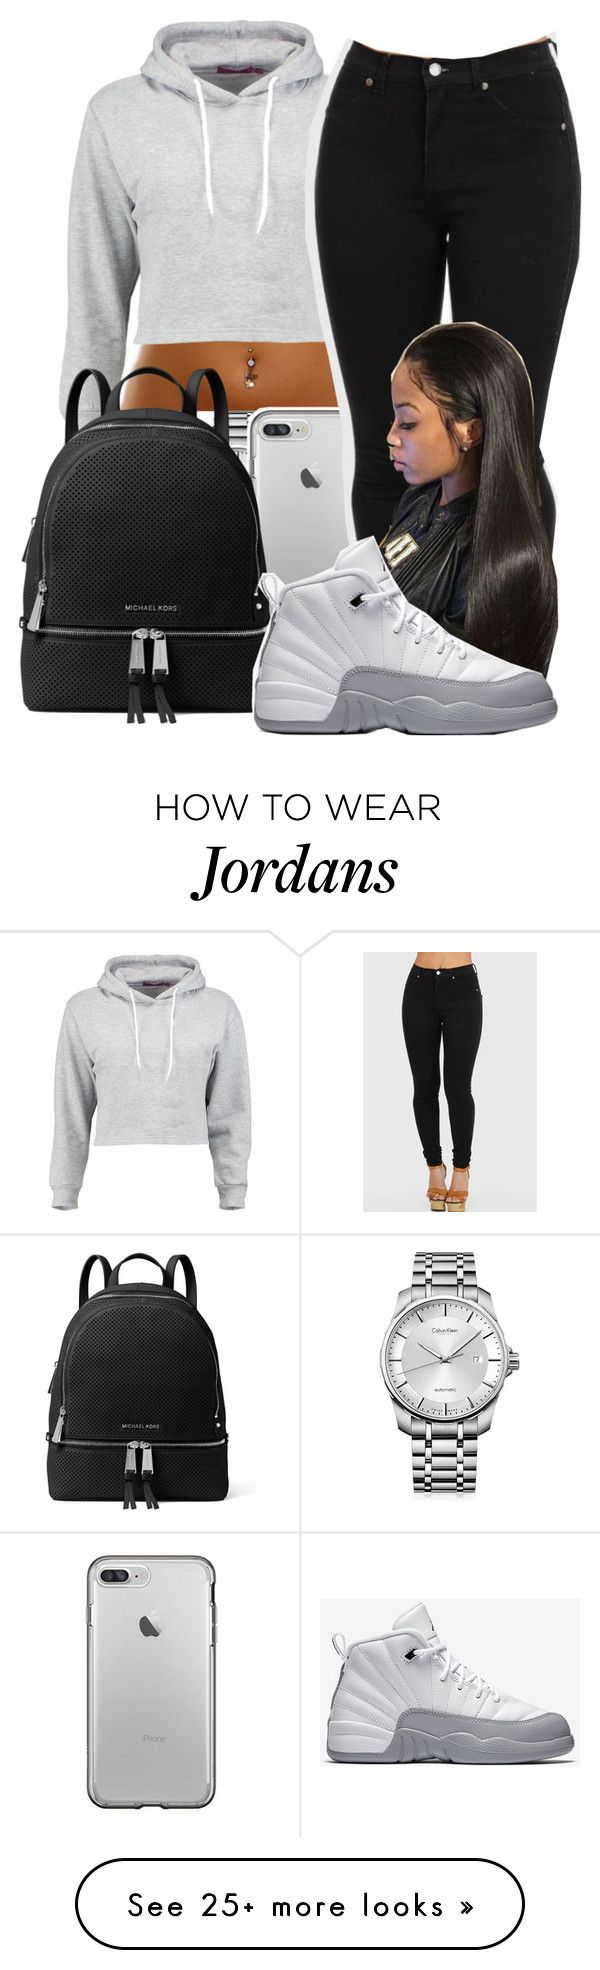 """Untitled #34"" by aaliyah-marie1 on Polyvore featuring Calvin Klein, Boohoo, MICHAEL Michael Kors and NIKE"